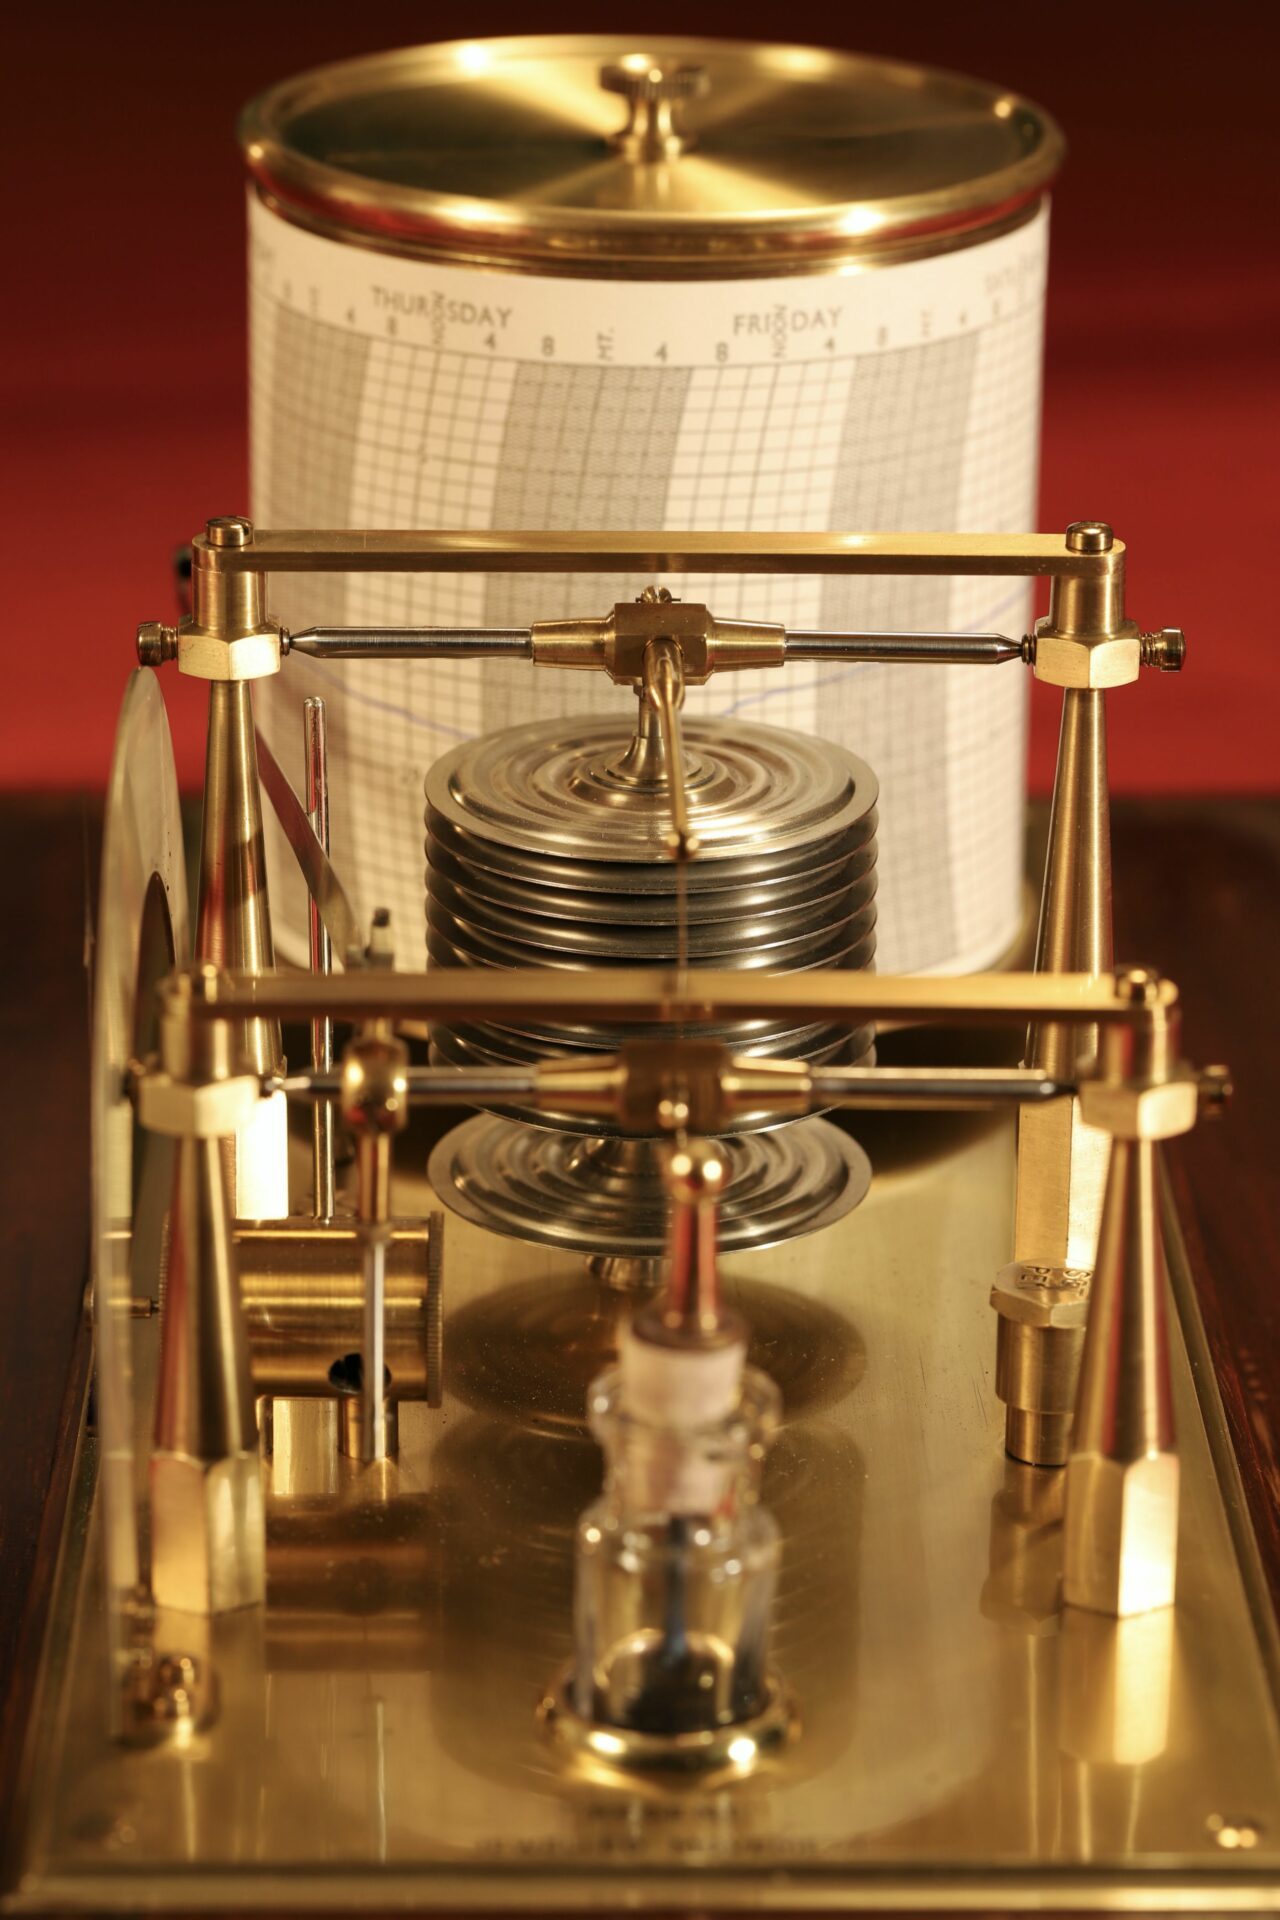 Image of Negretti & Zambra Regent Barograph No R6259 c1929 taken from above without case lid